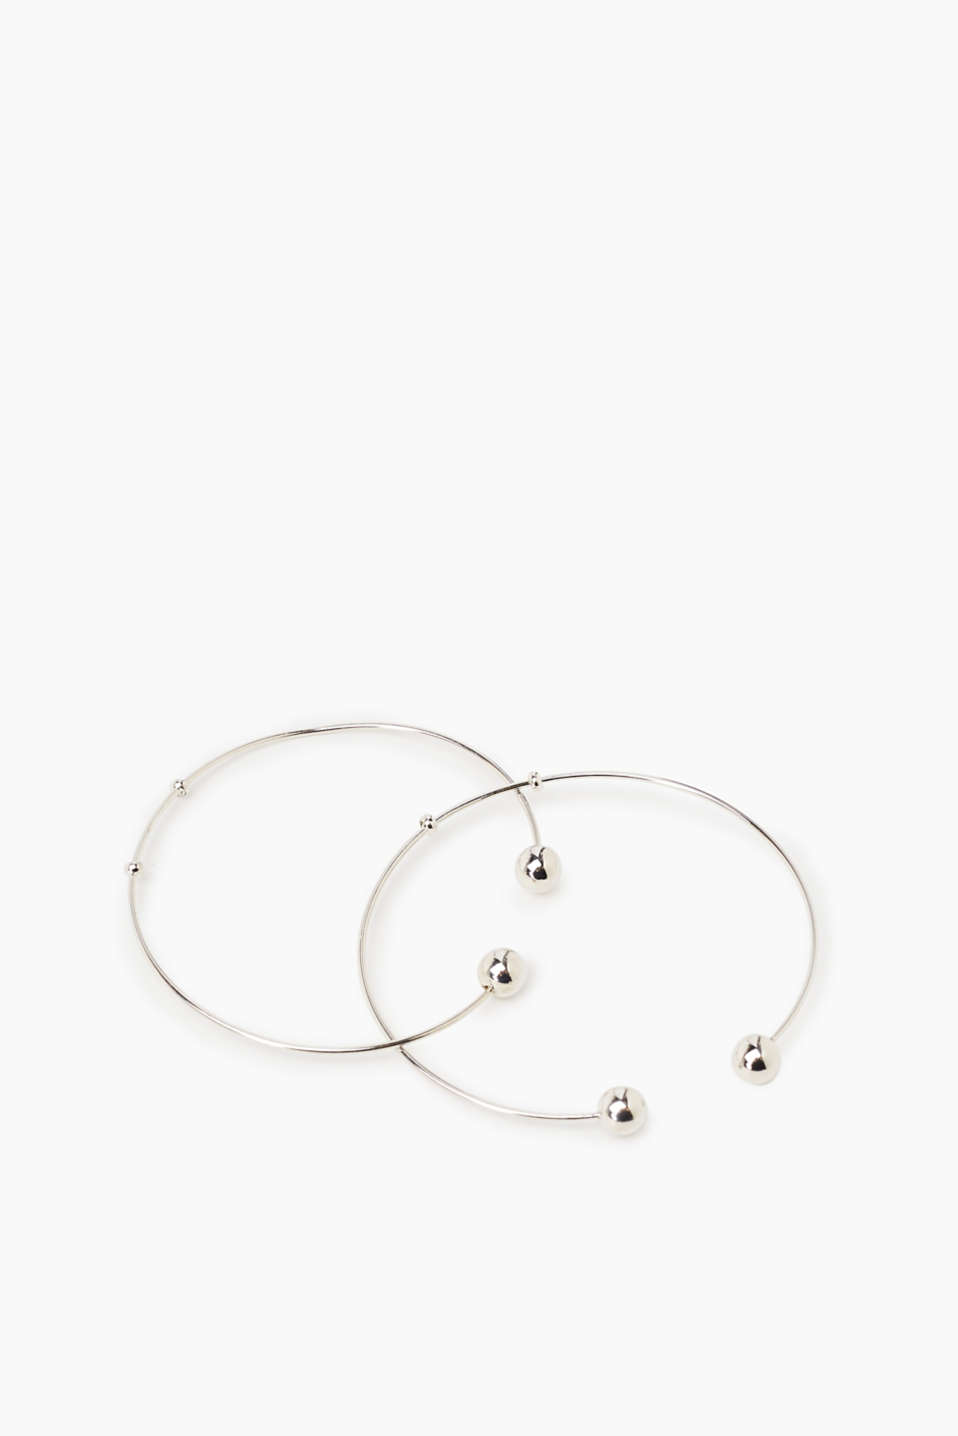 We love minimalist designs! These bangles feature an open design and striking stud details.